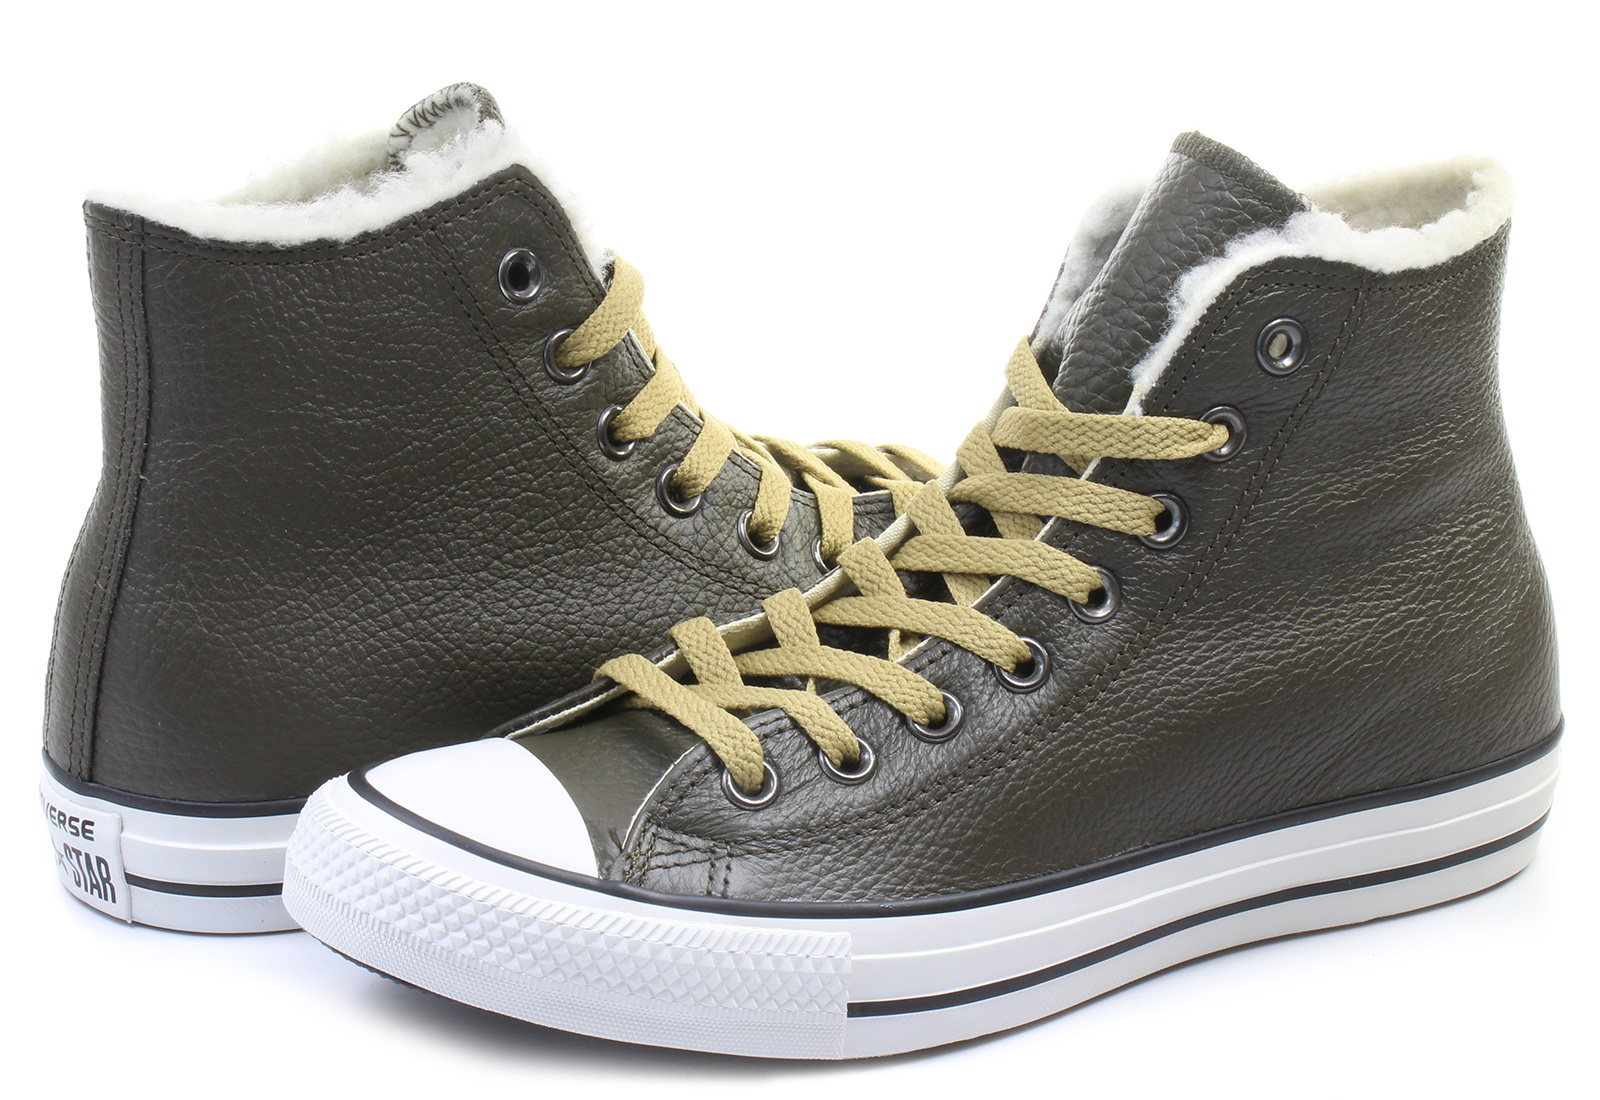 cbf8cbfdd1d Converse Tenisky - Chuck Taylor All Star Leather Fur Hi ...